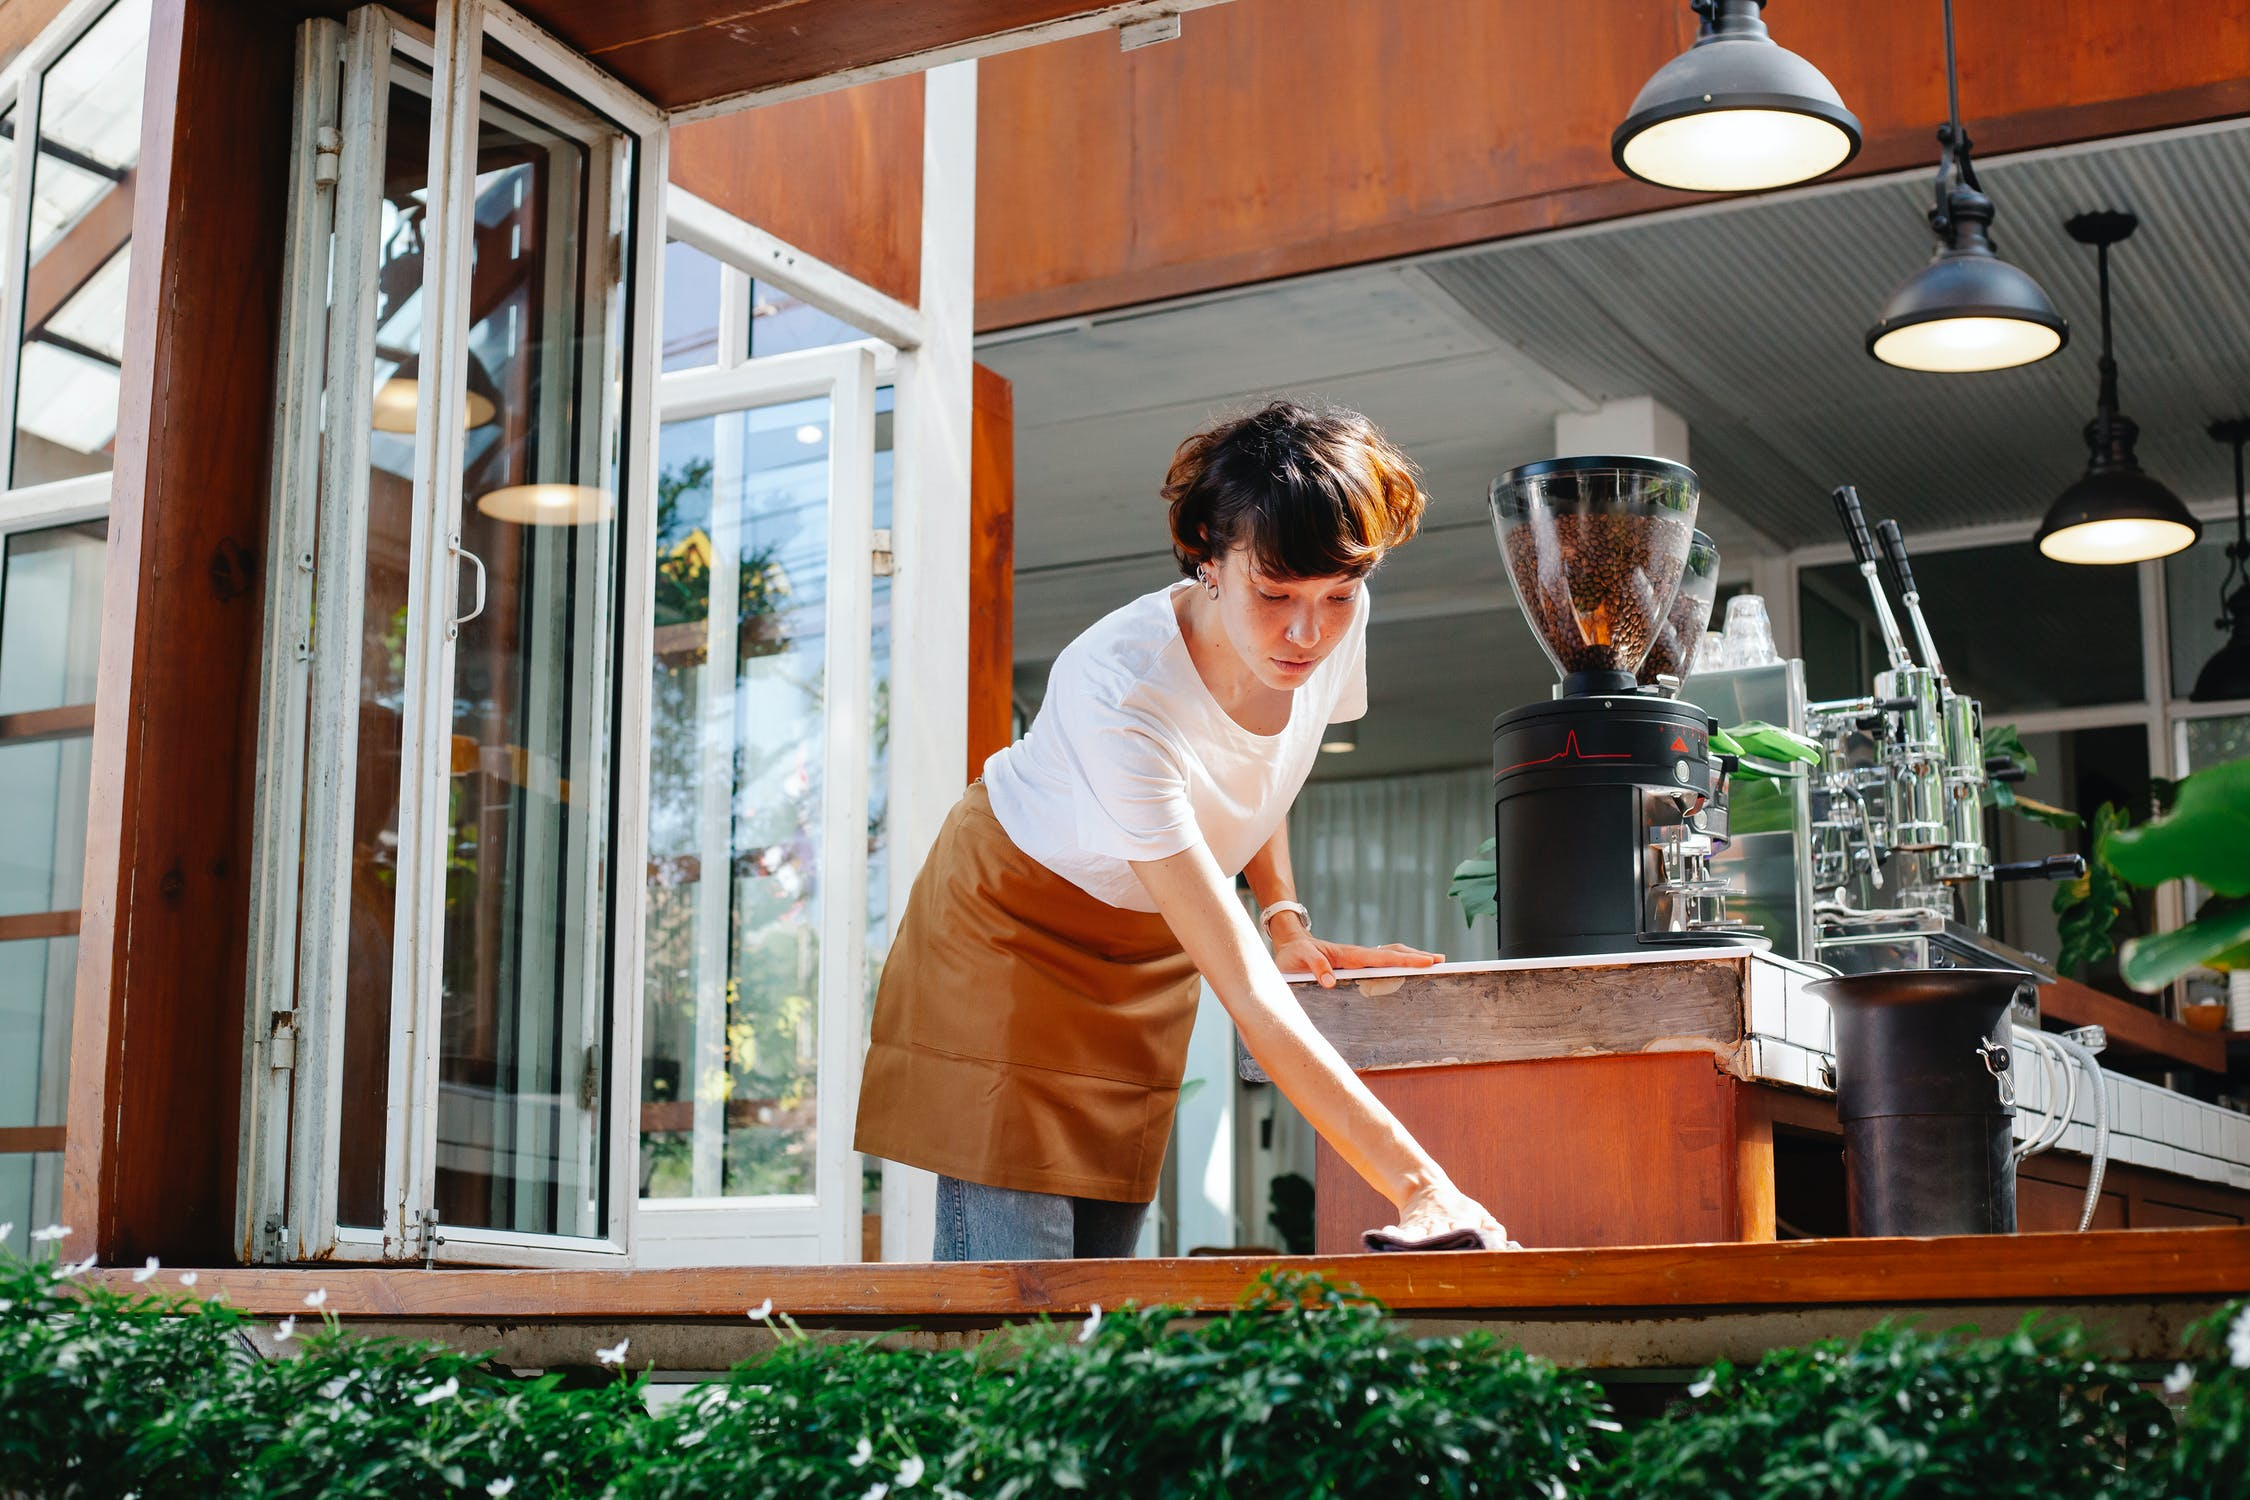 Working as a waitress | Source: Pexels